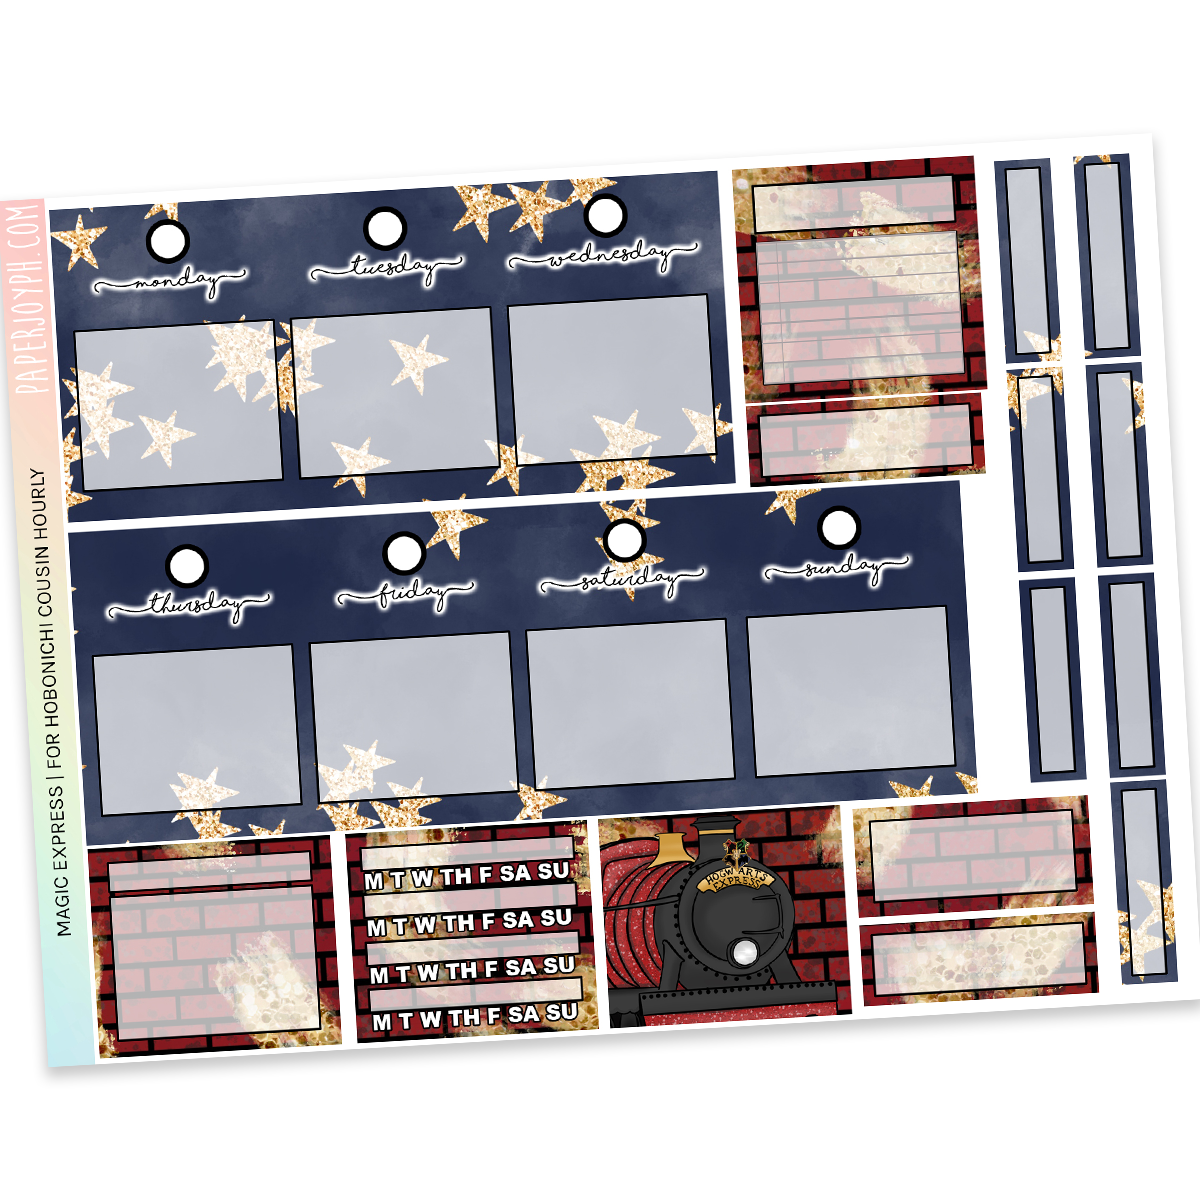 HOBONICHI COUSIN | HOURLY STICKER KIT | Magic Express